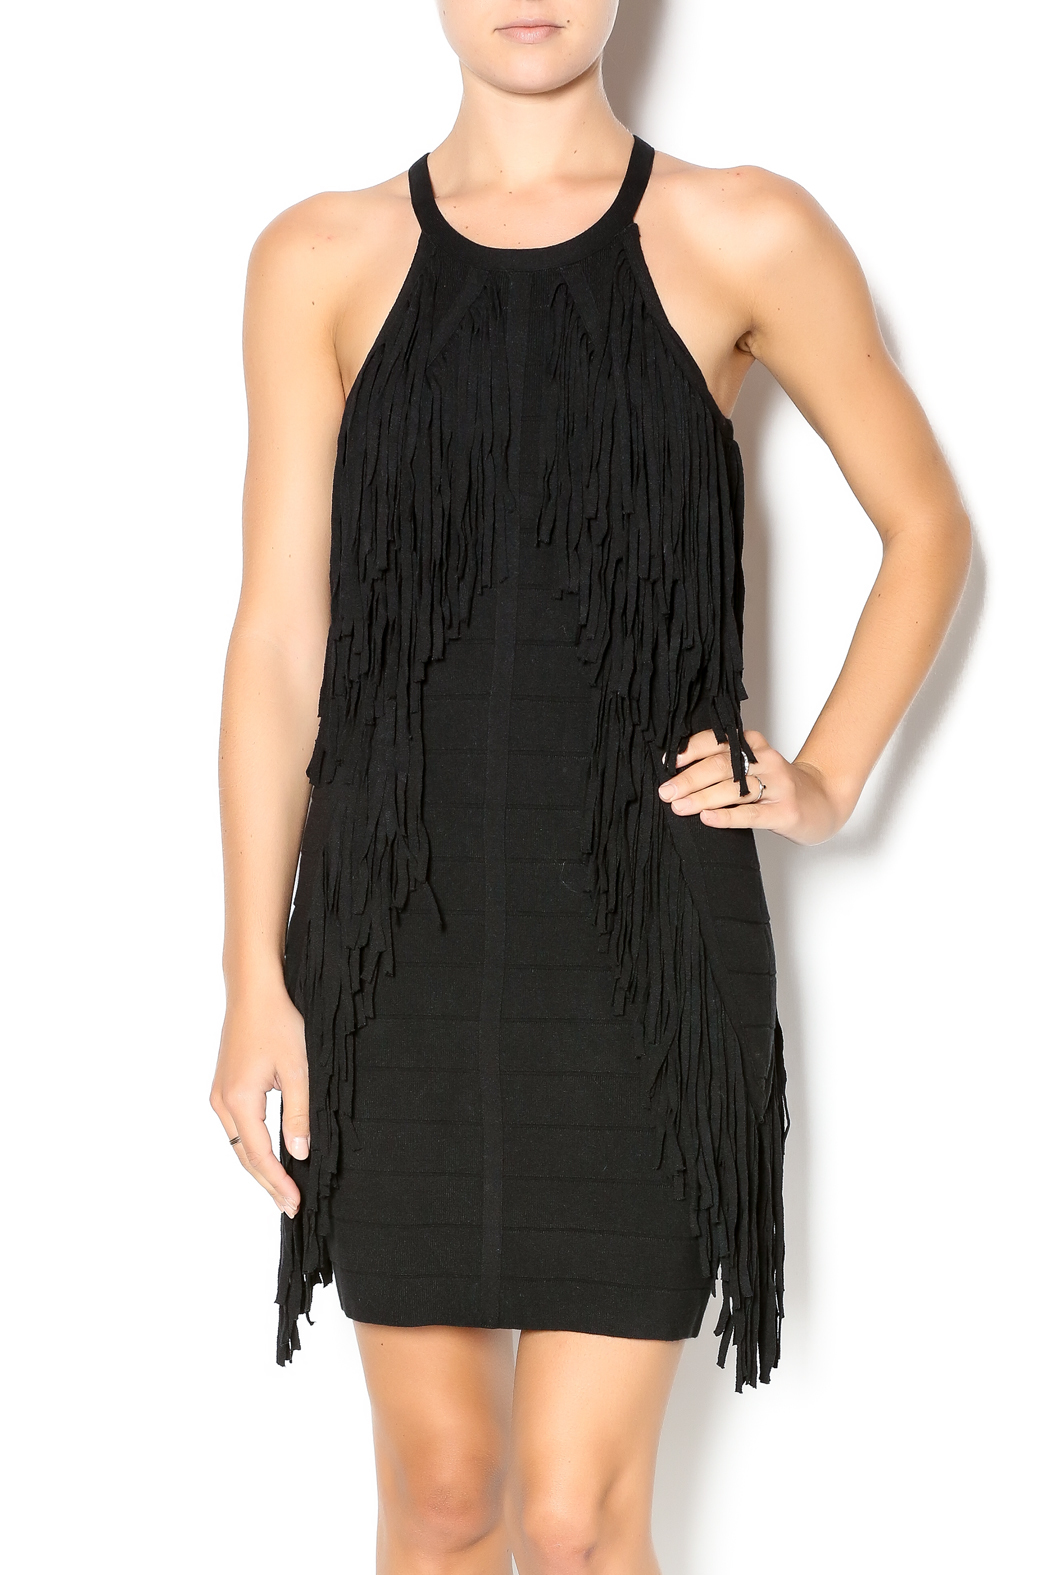 Endless Rose Black Fringe Dress from Texas by Le Marche' — Shoptiques